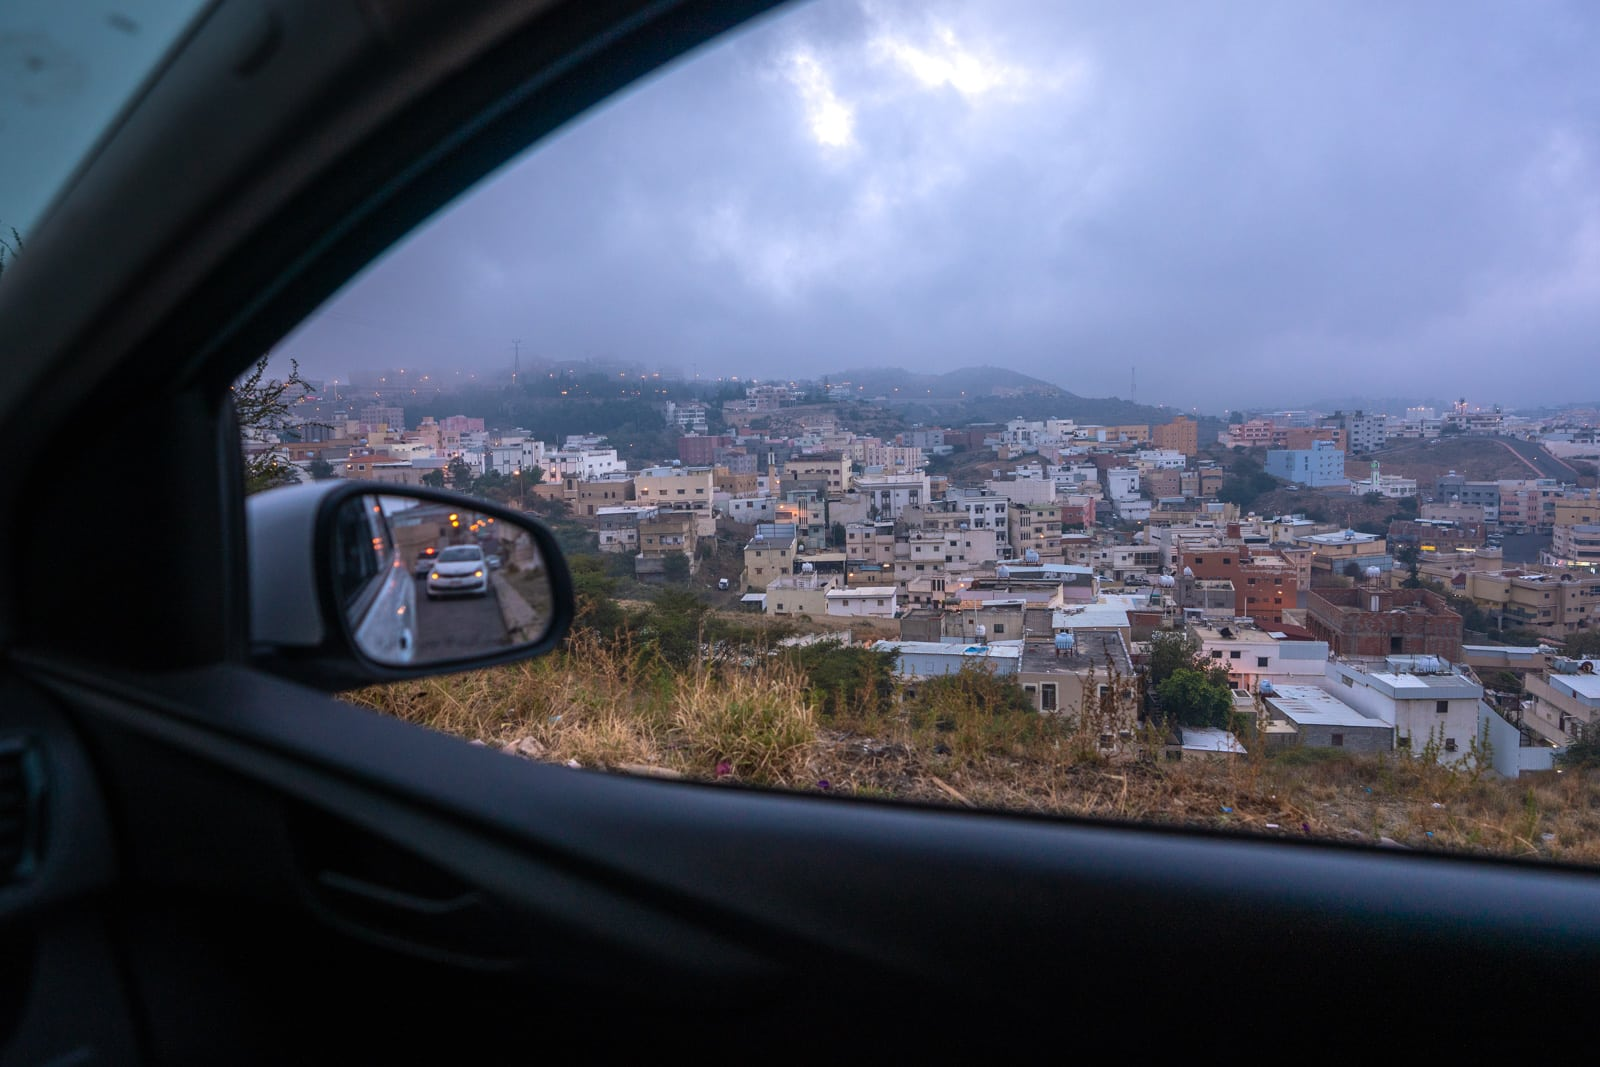 View of Abha from car in Saudi Arabia